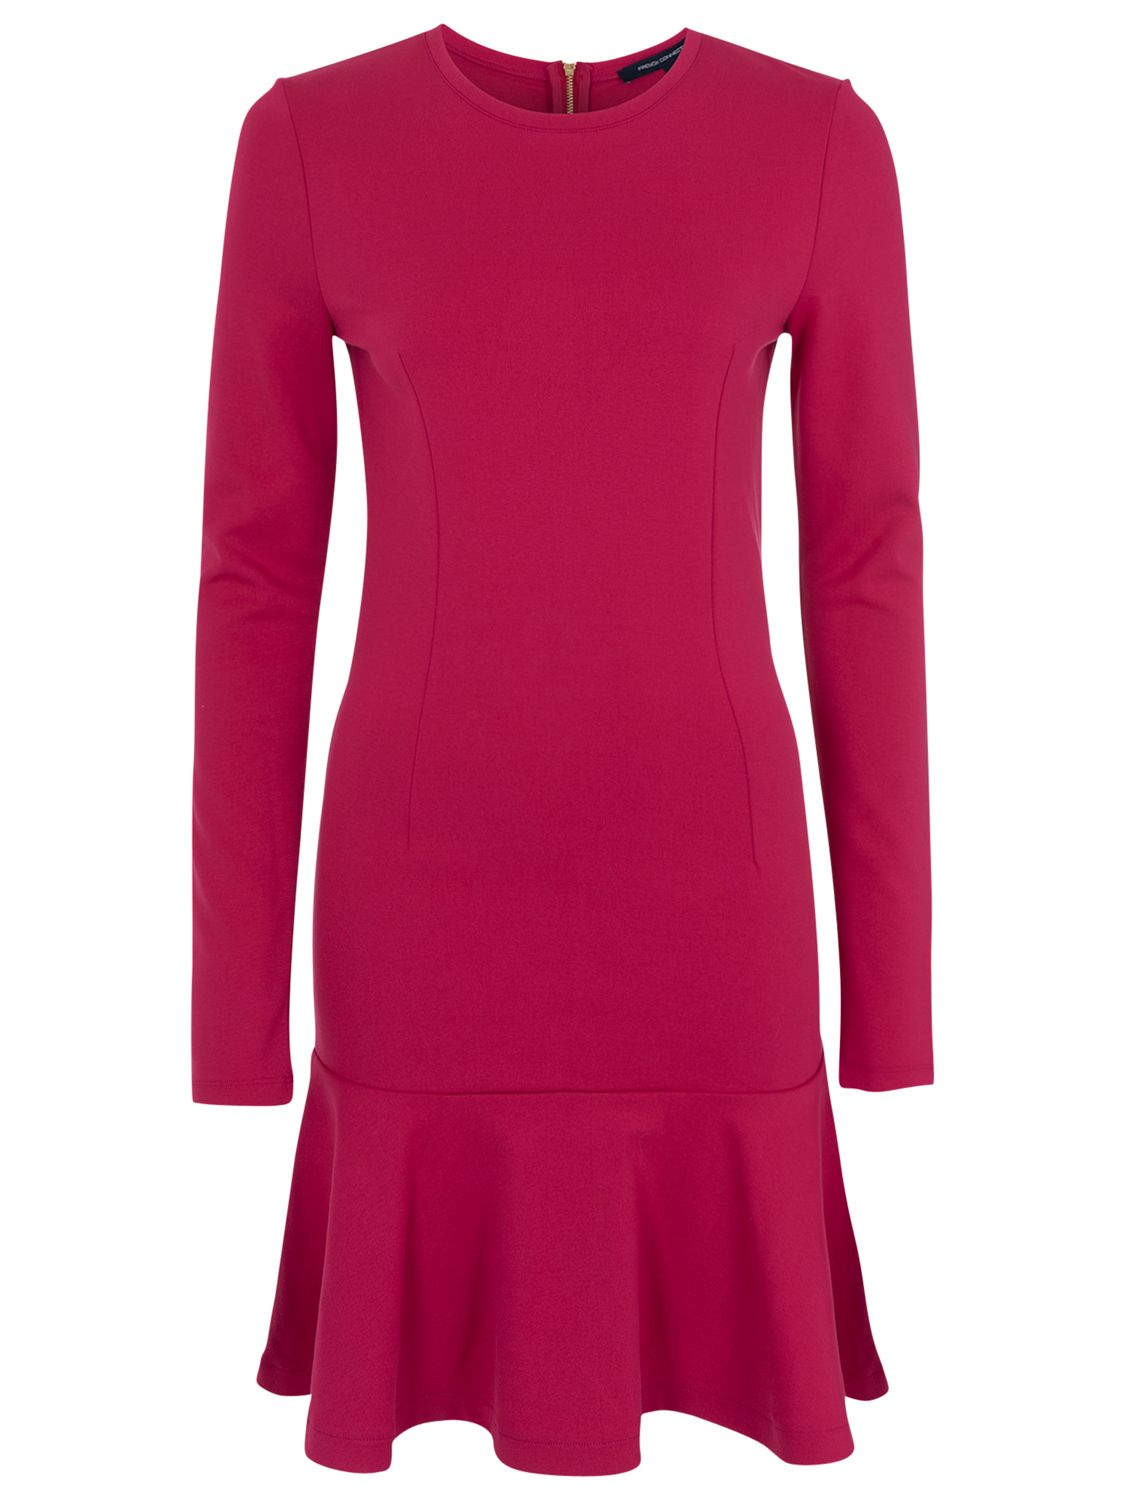 french connection orchard solid dress berry punch, french, connection, orchard, solid, dress, berry, punch, french connection, 12|14, clearance, womenswear offers, womens dresses offers, women, inactive womenswear, new reductions, womens dresses, special offers, 1655335